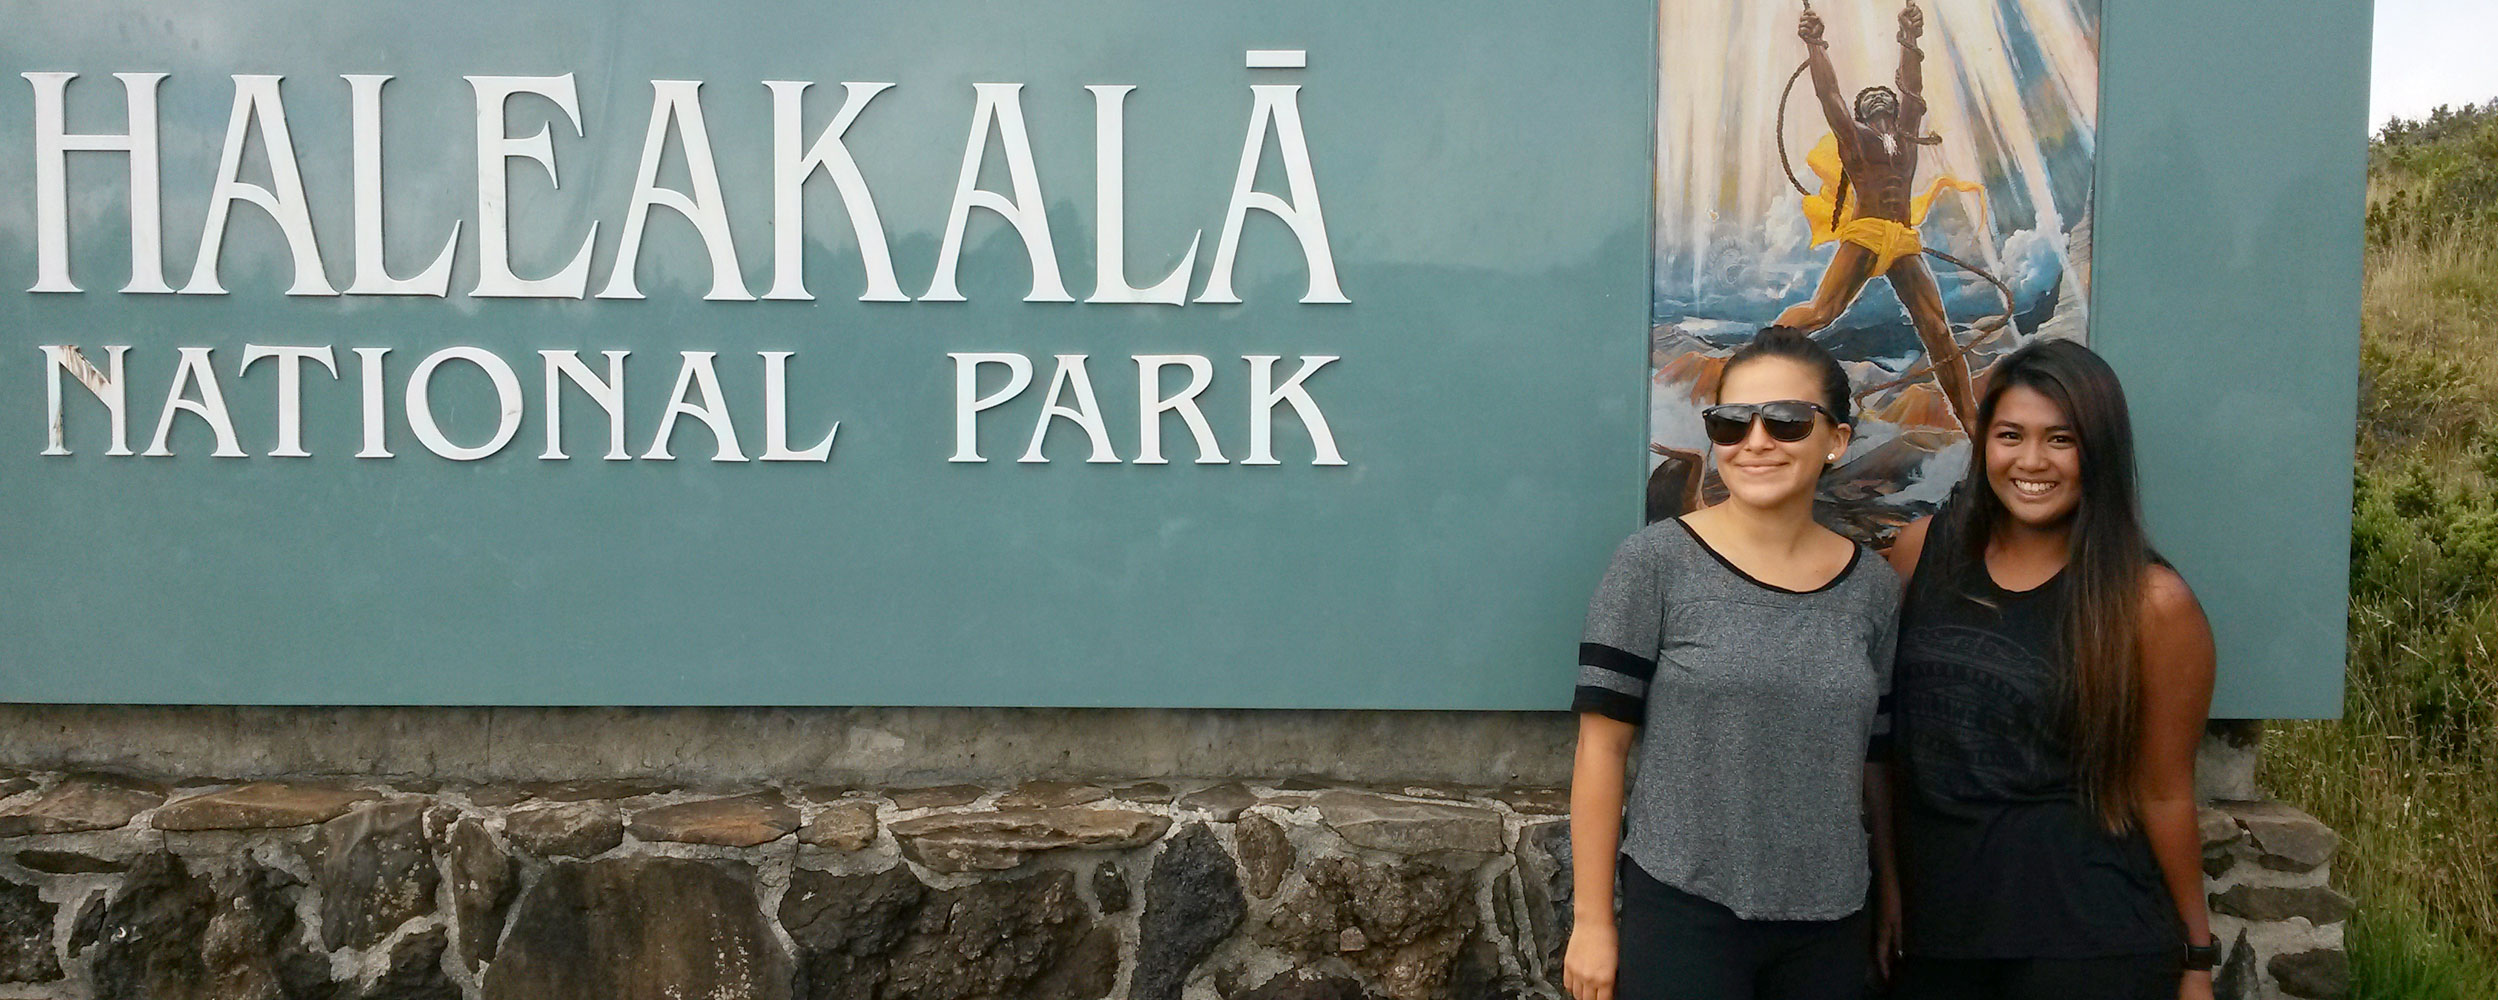 Haleakala National Park Entrance